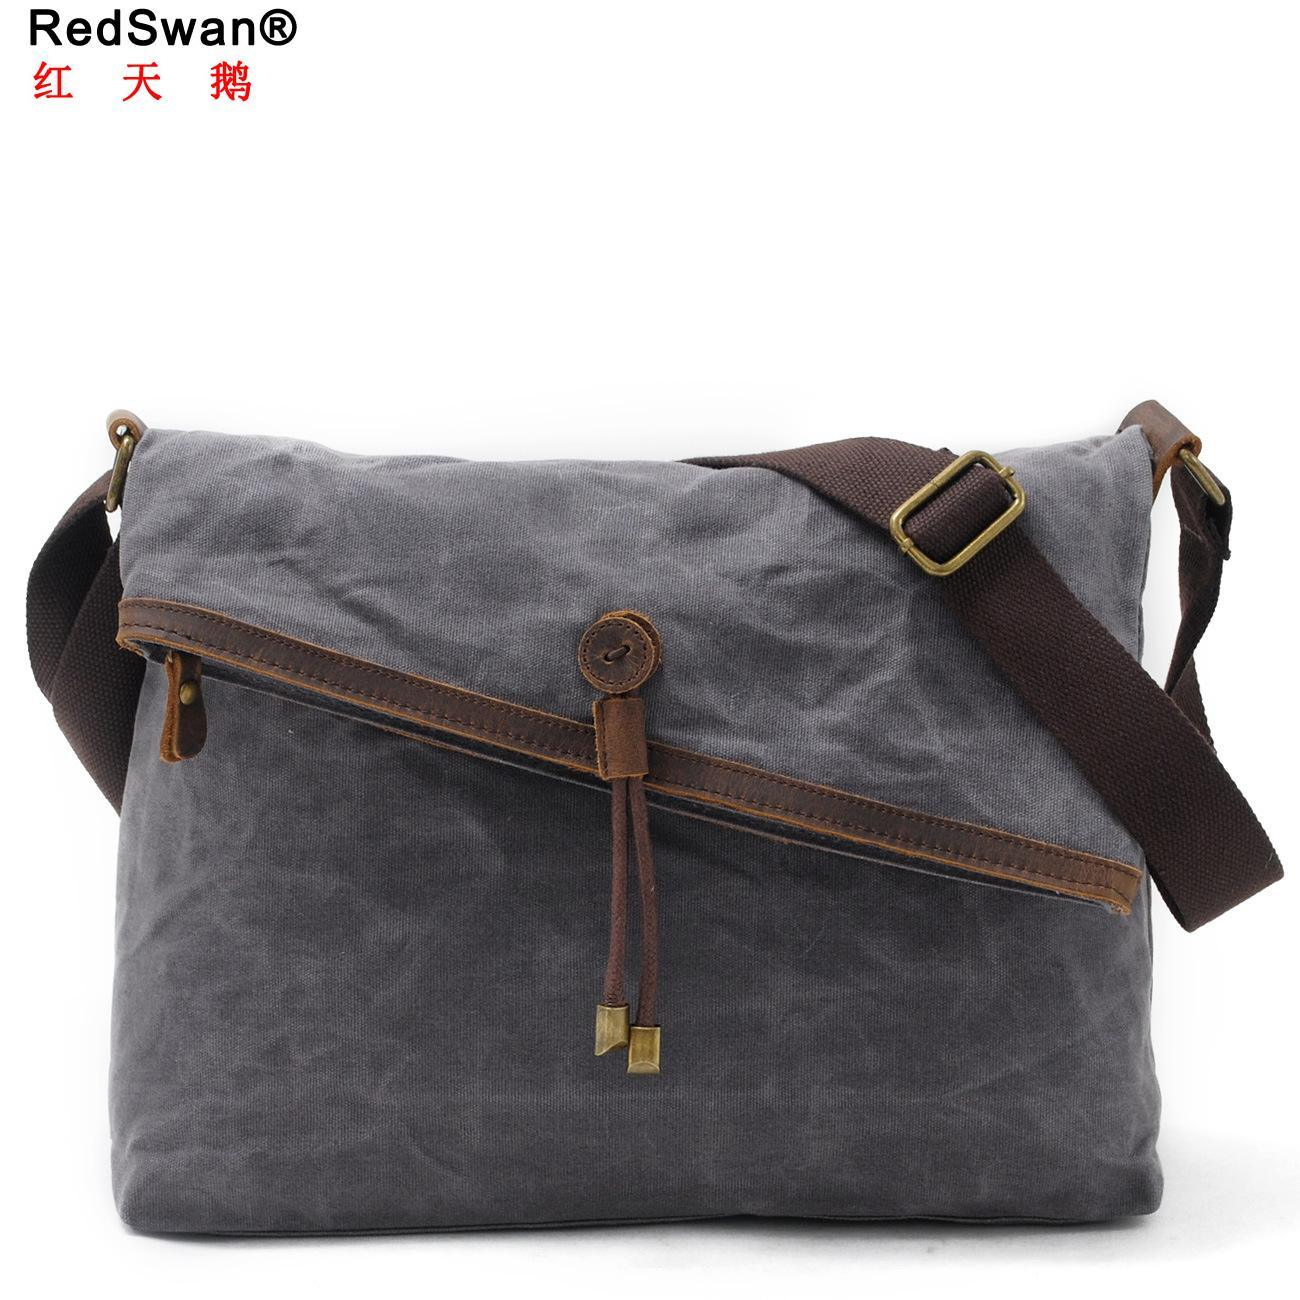 de62883ae651 Waxed Canvas Leather Trims New Designer Woman and Men′s Shoulder Military  Bag (RS-9121-F)